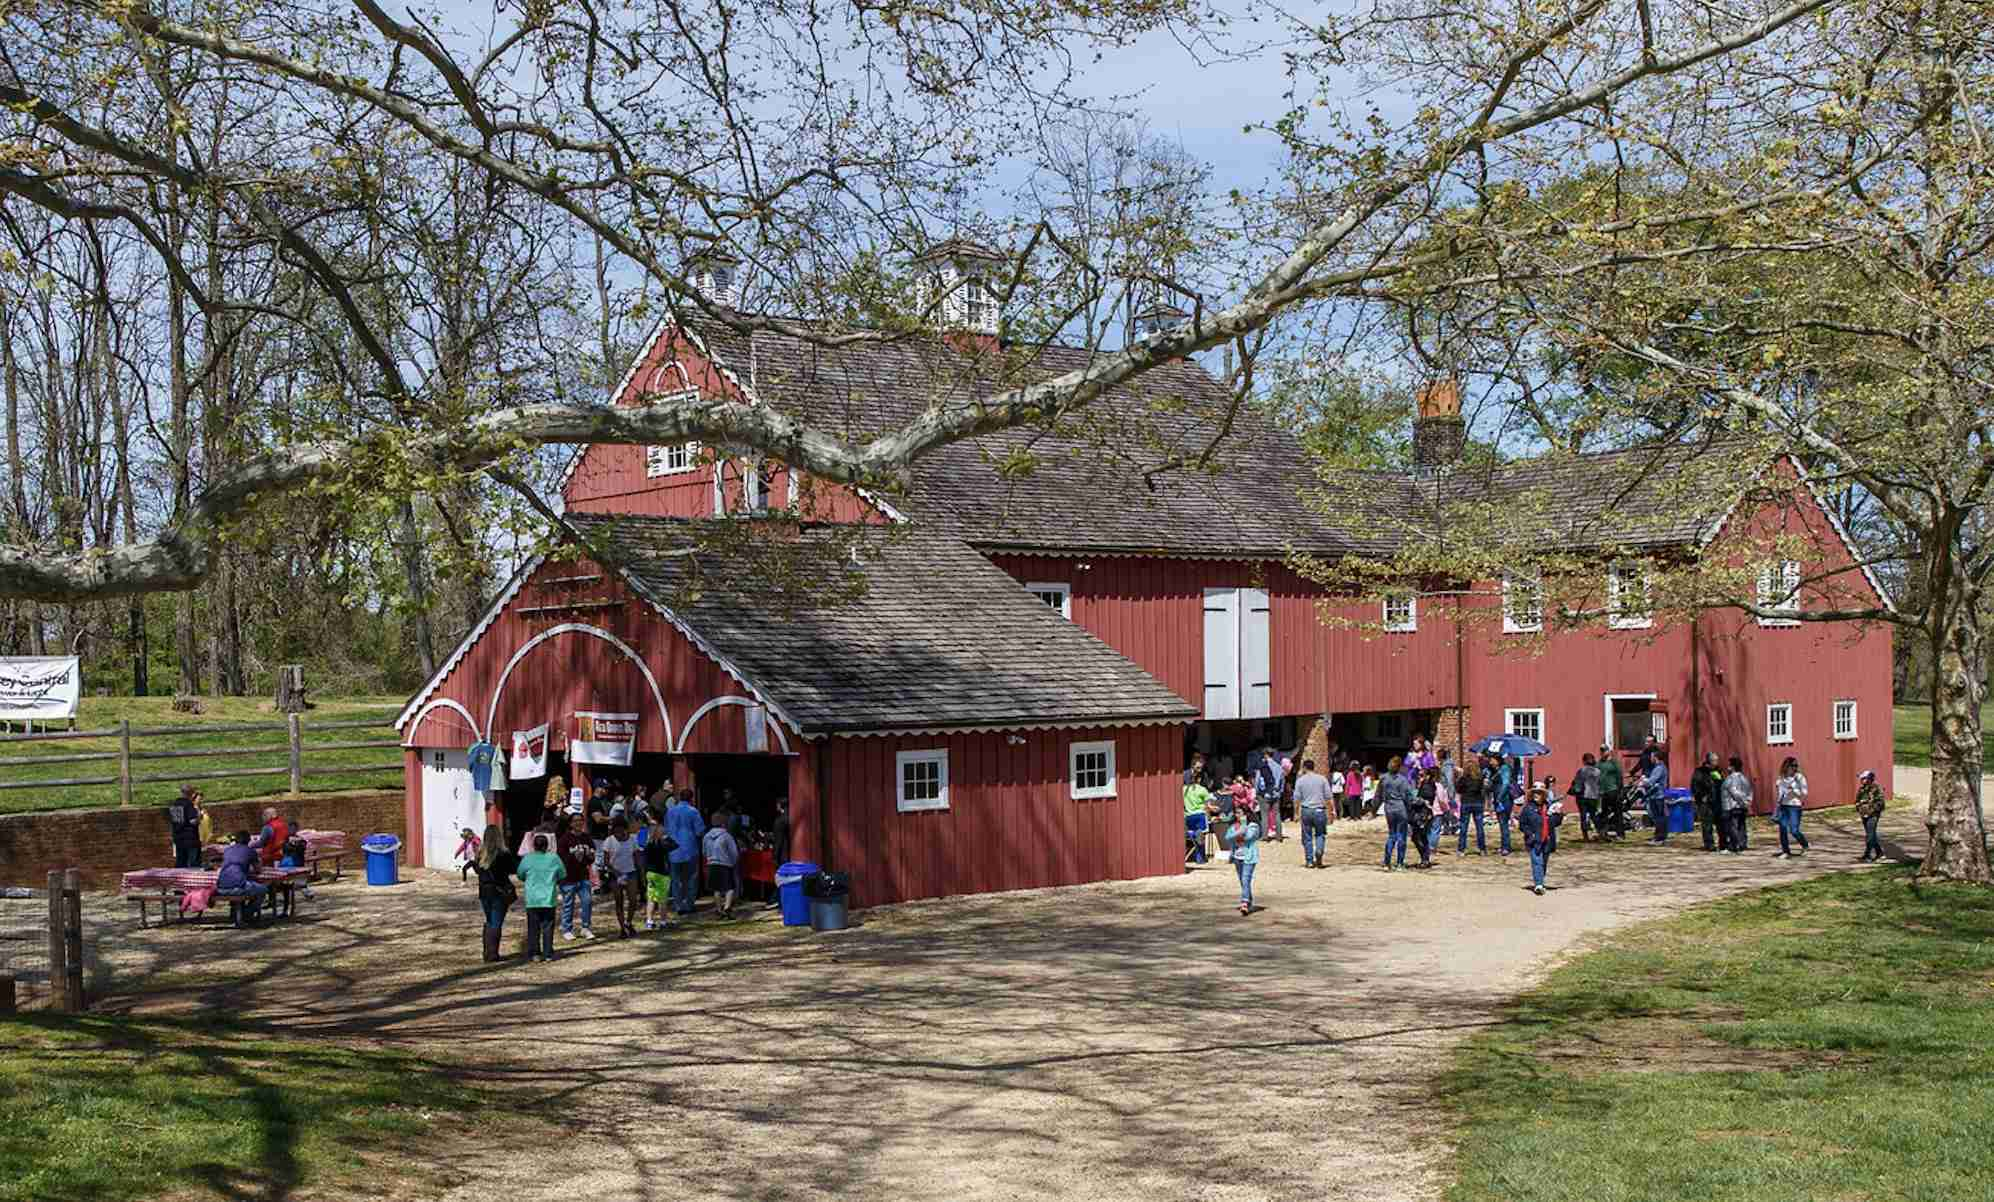 Holmdel Earth Day Bayonet Farm 2019 barn